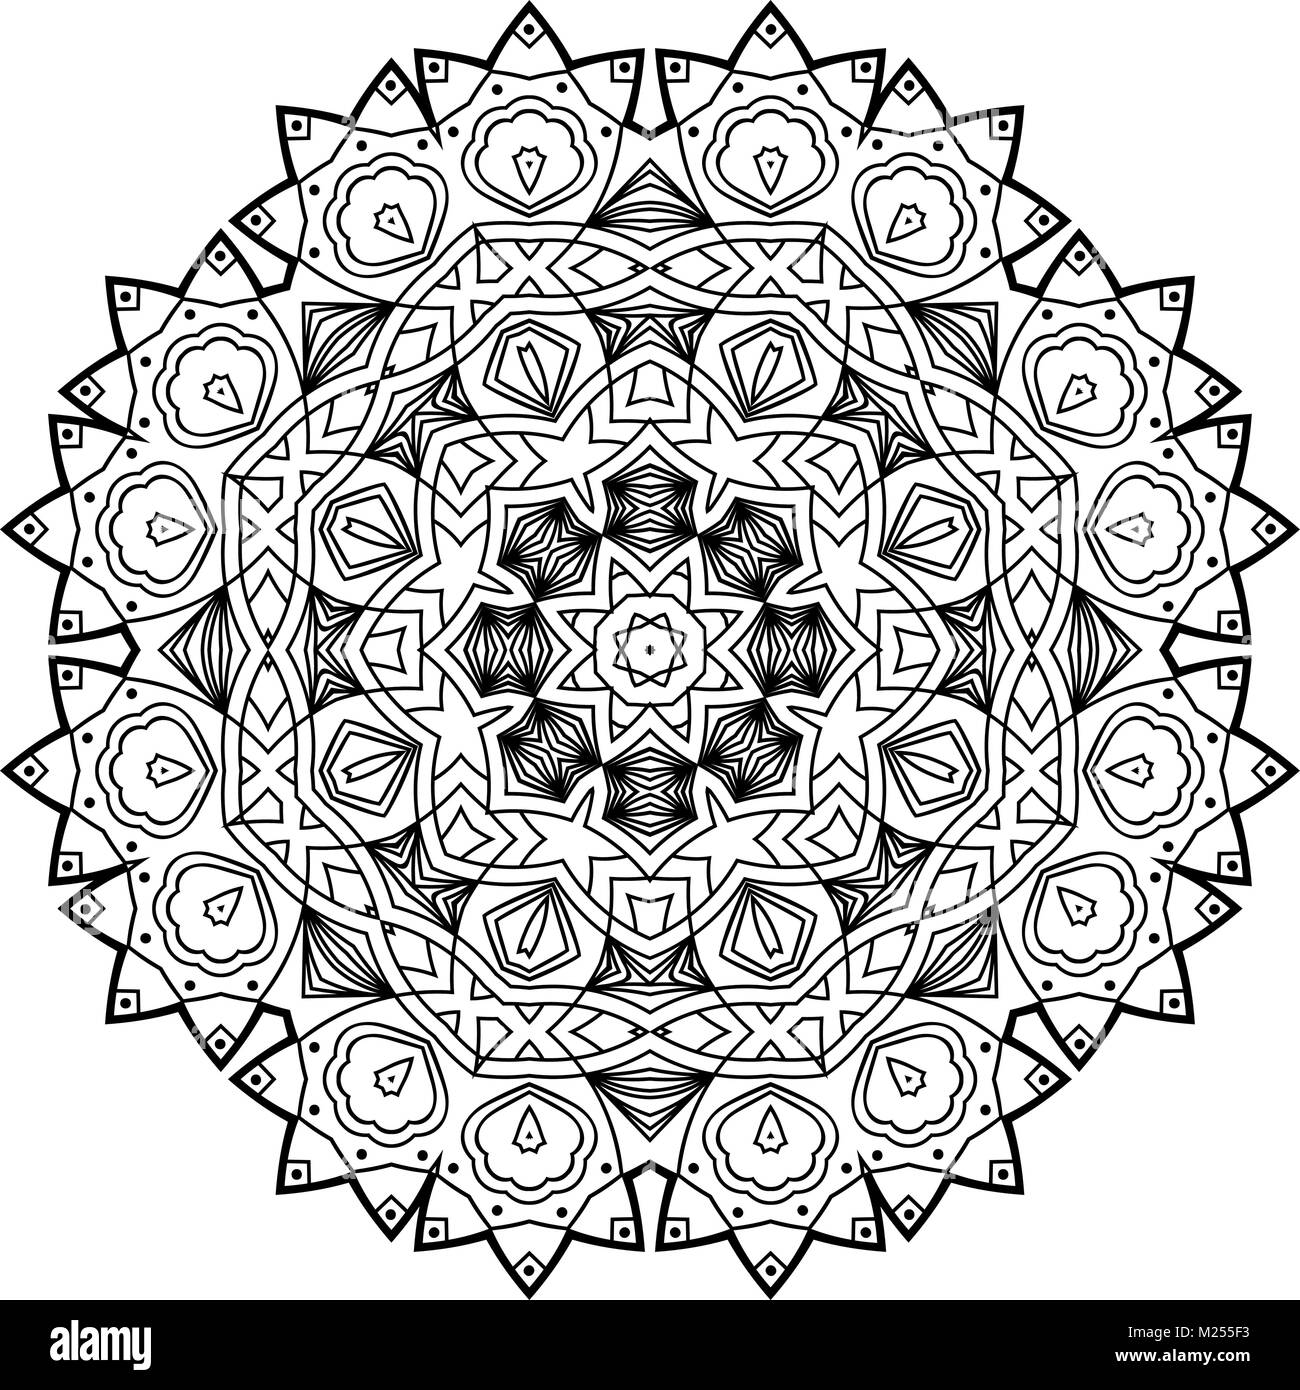 Flower Mandala Vintage Decorative Elements Oriental Pattern Vector Illustration Coloring Book Page Islam Arabic Indian Moroccan Spain Turkish